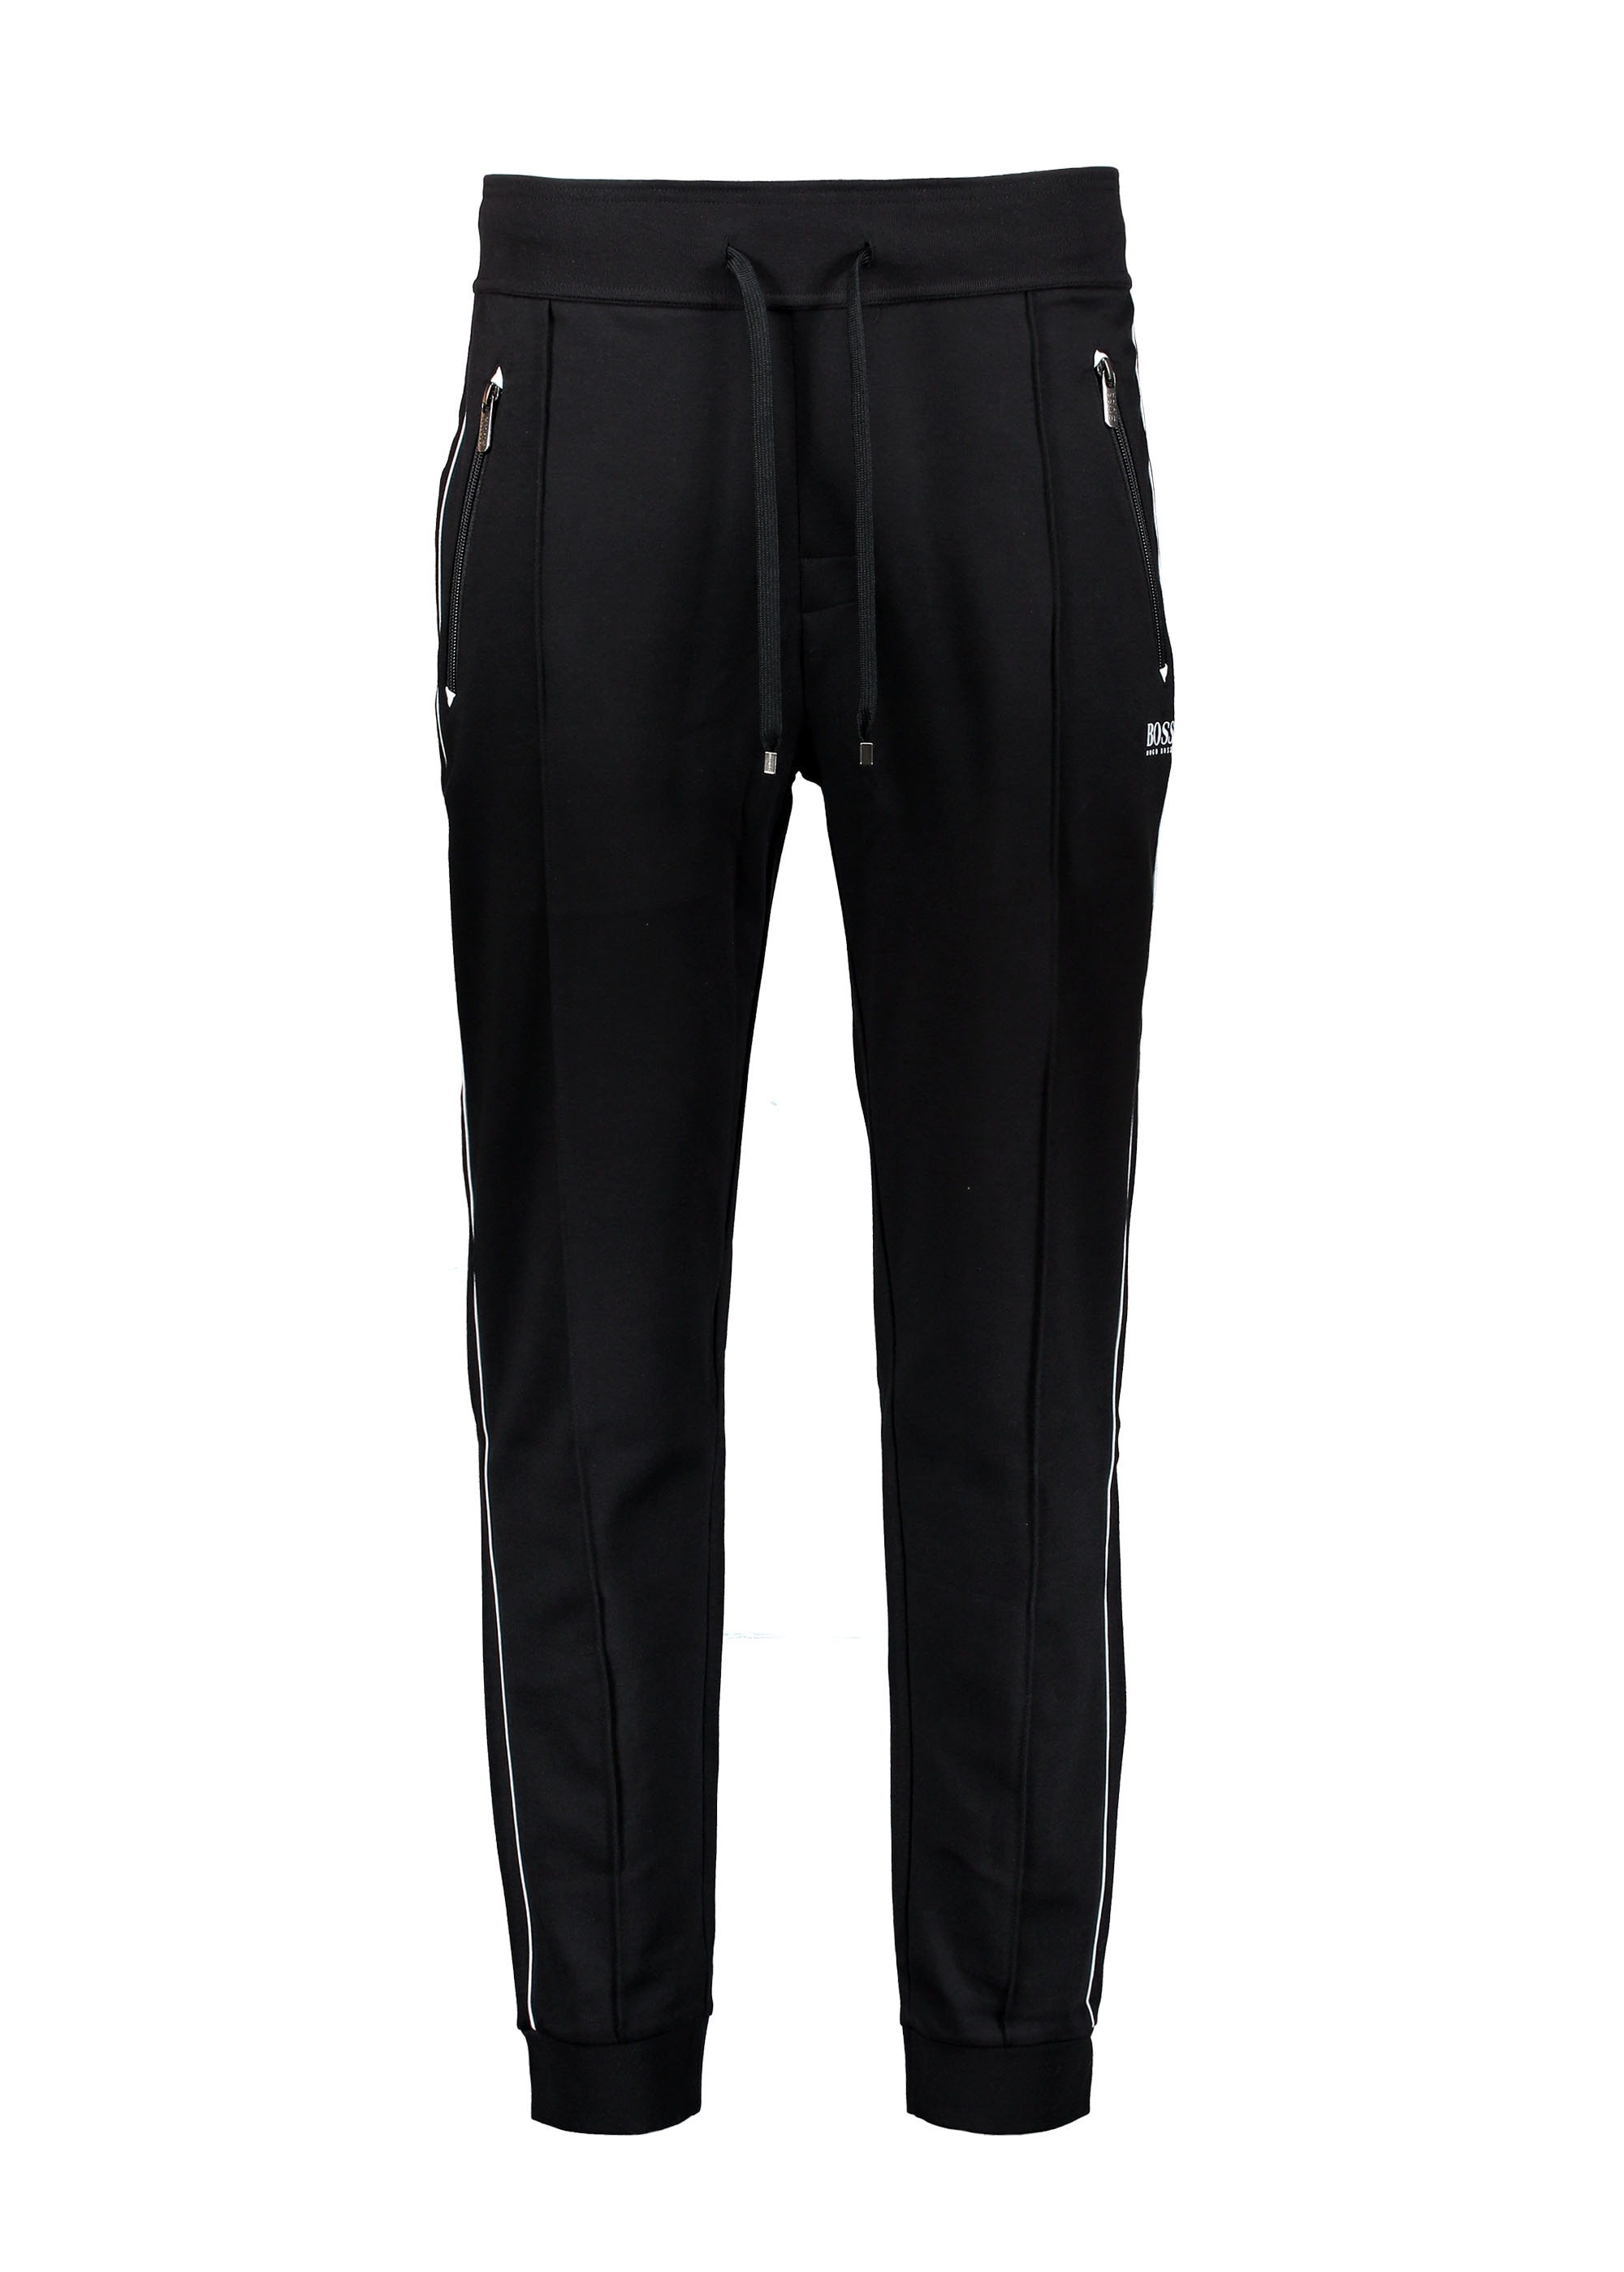 a2e45978 BOSS Tracksuit Pants 001 - Black - Track Pants from Triads UK